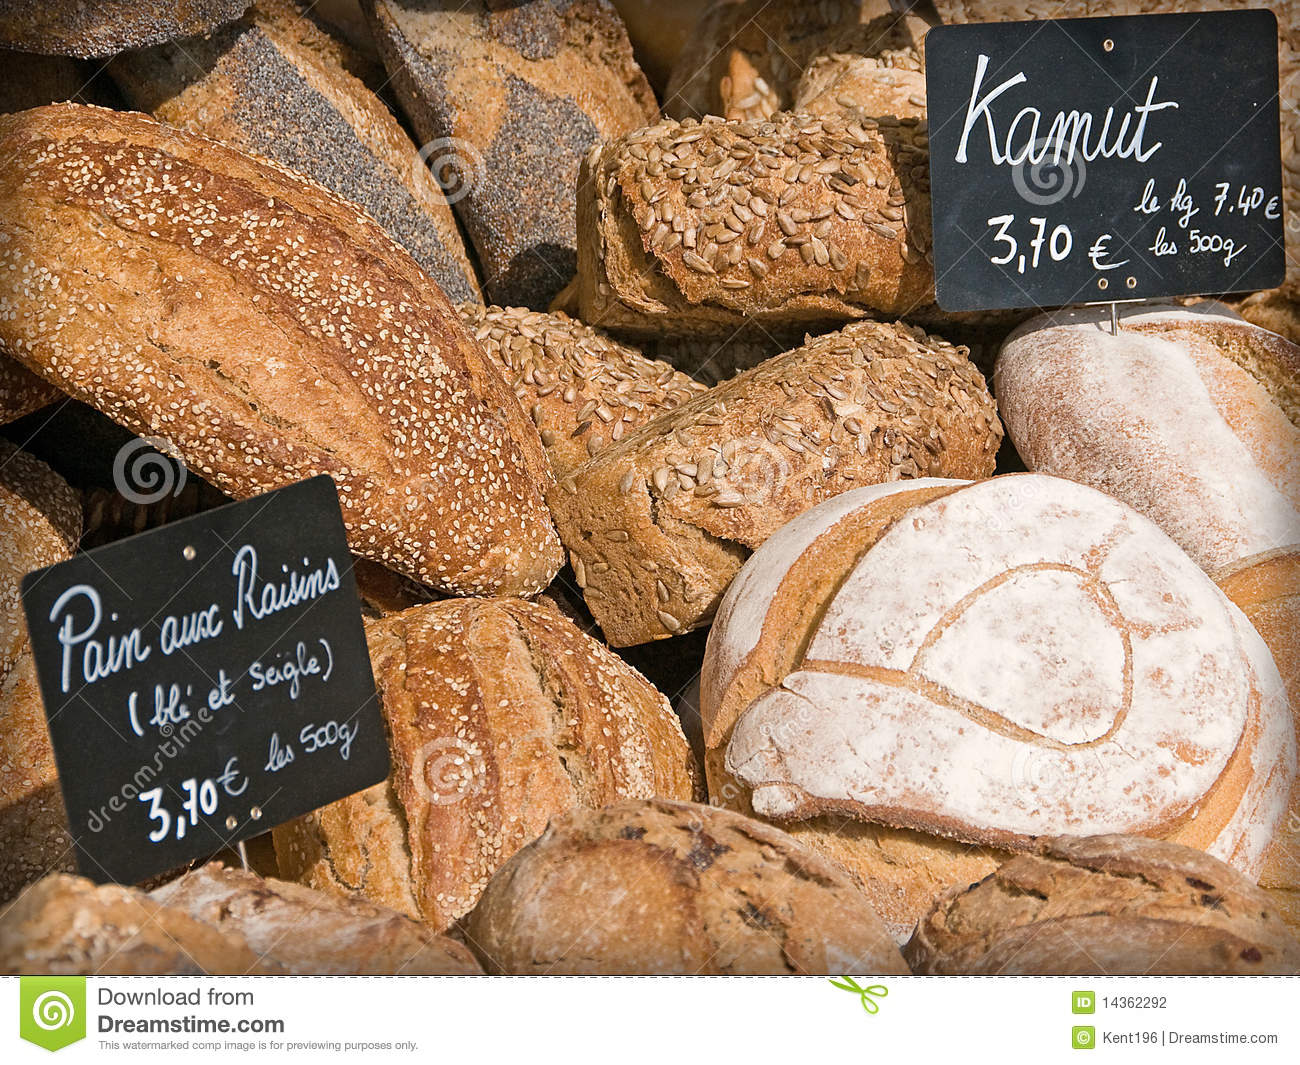 history background of vita bread marketing essay Pakistan management problem the new bread is trying to introduce itself into the market, so they want to study the current market status, as do they consume bread, if so then what brand of bread(s) do they consume.